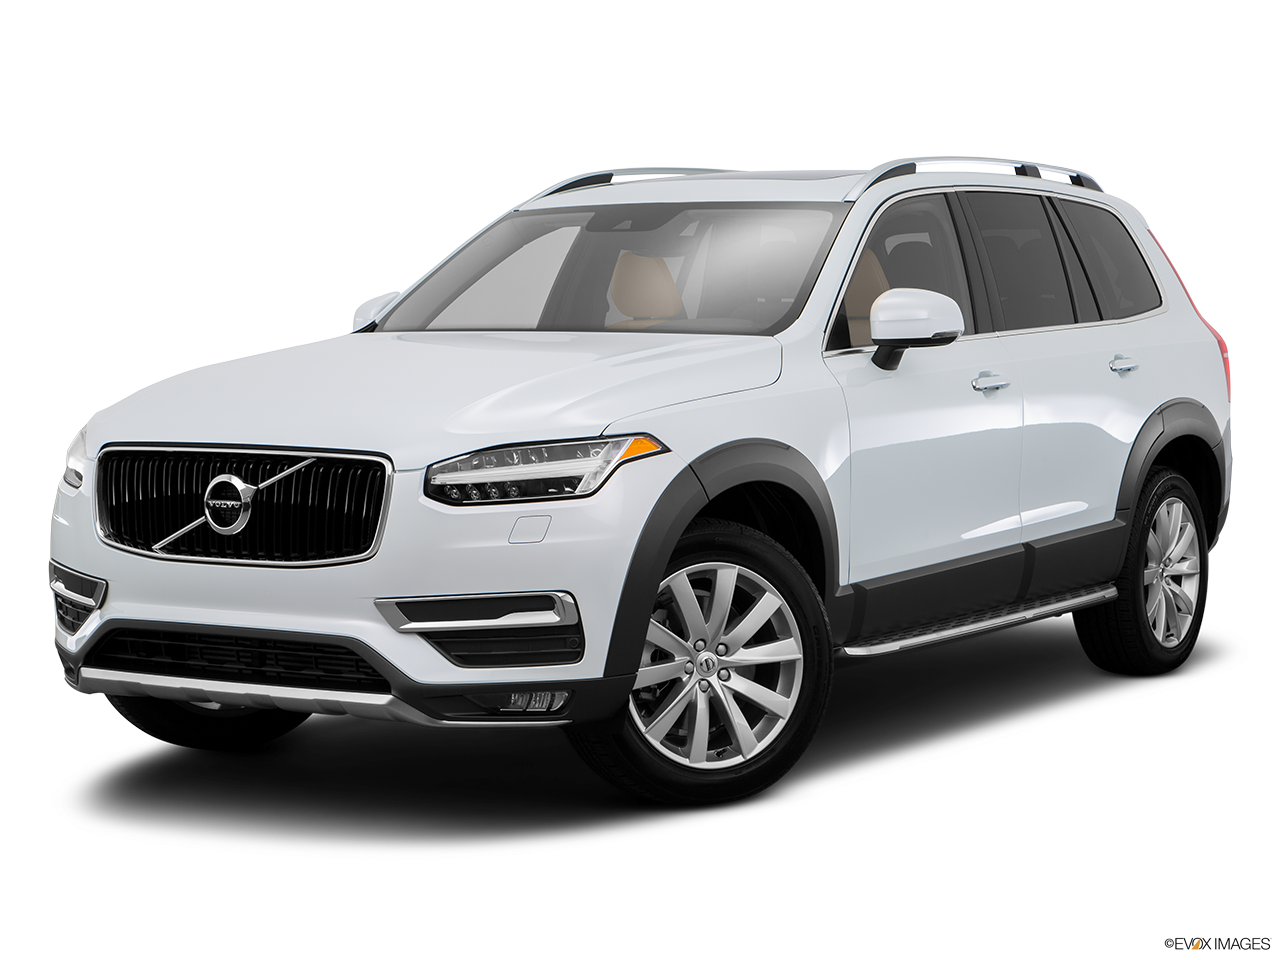 2016 Volvo Xc90 Dealer Serving Los Angeles Galpin Volvo